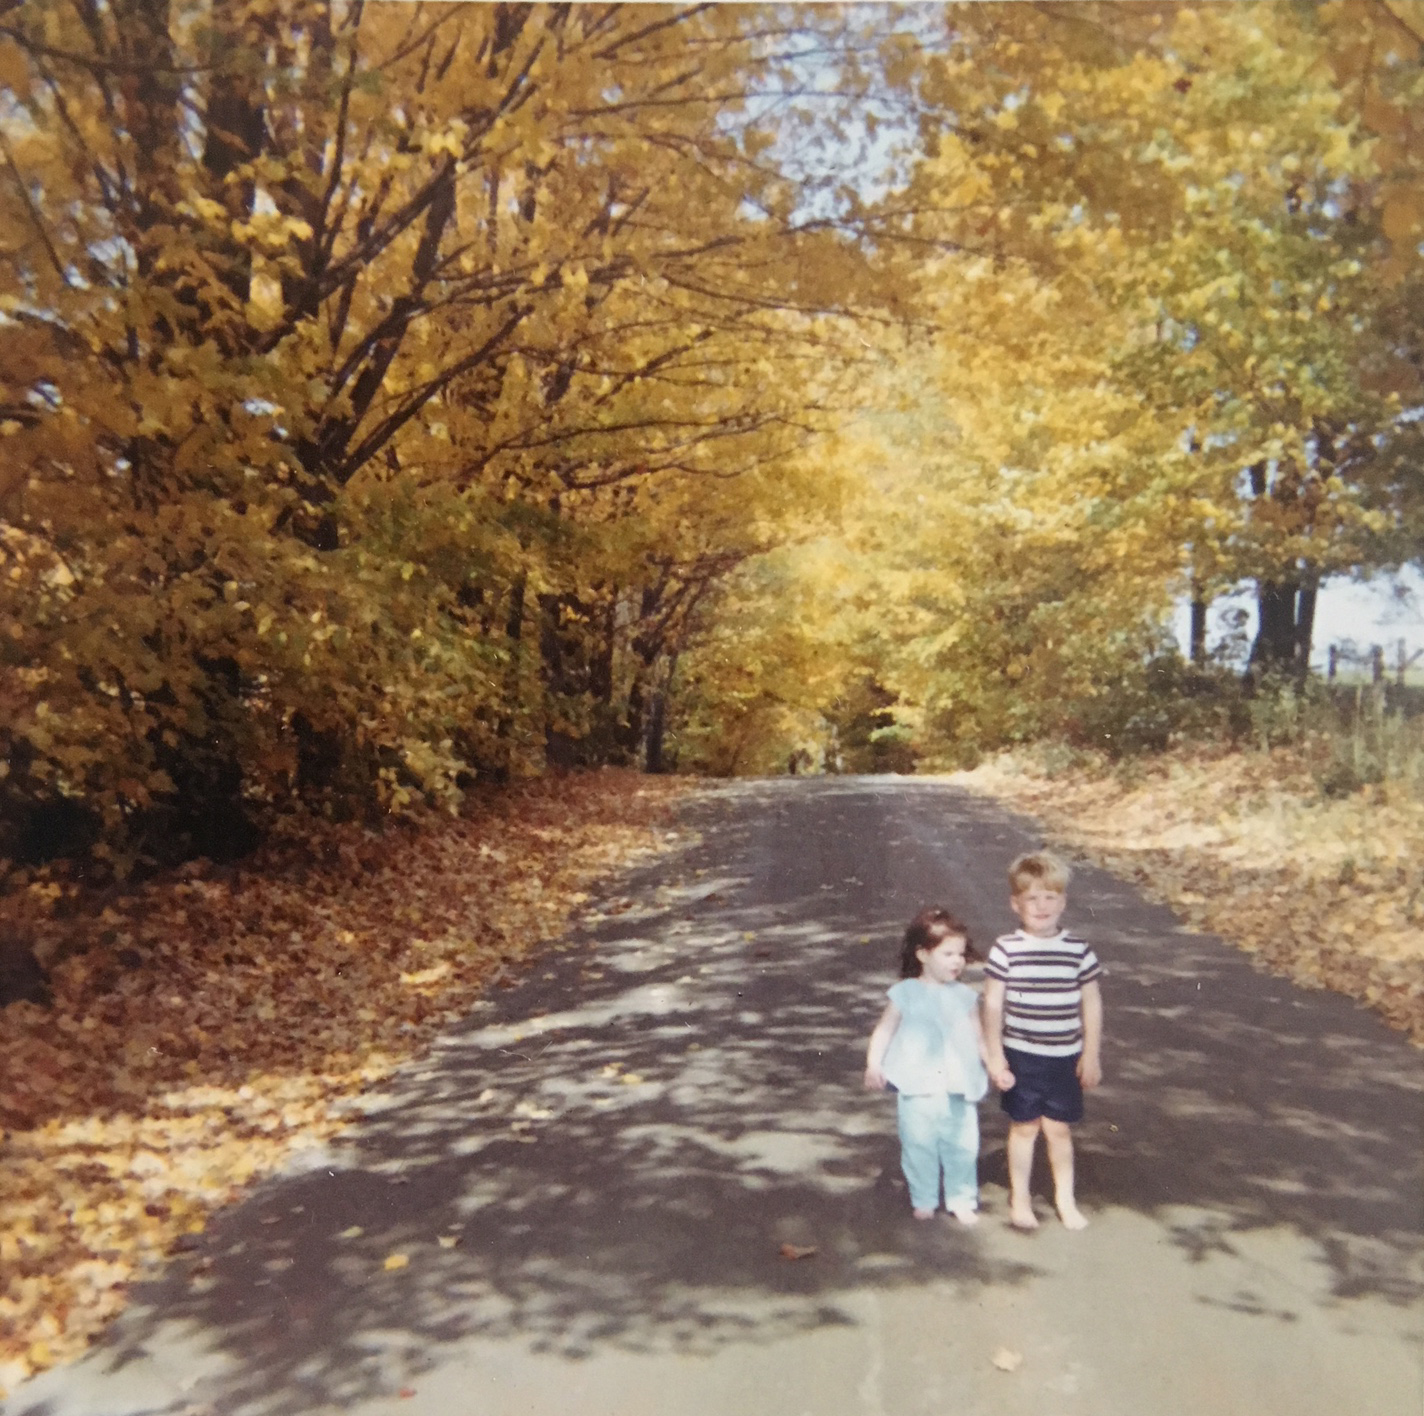 Anne and Charles Tracy go for a walk on an autumn day, 1971